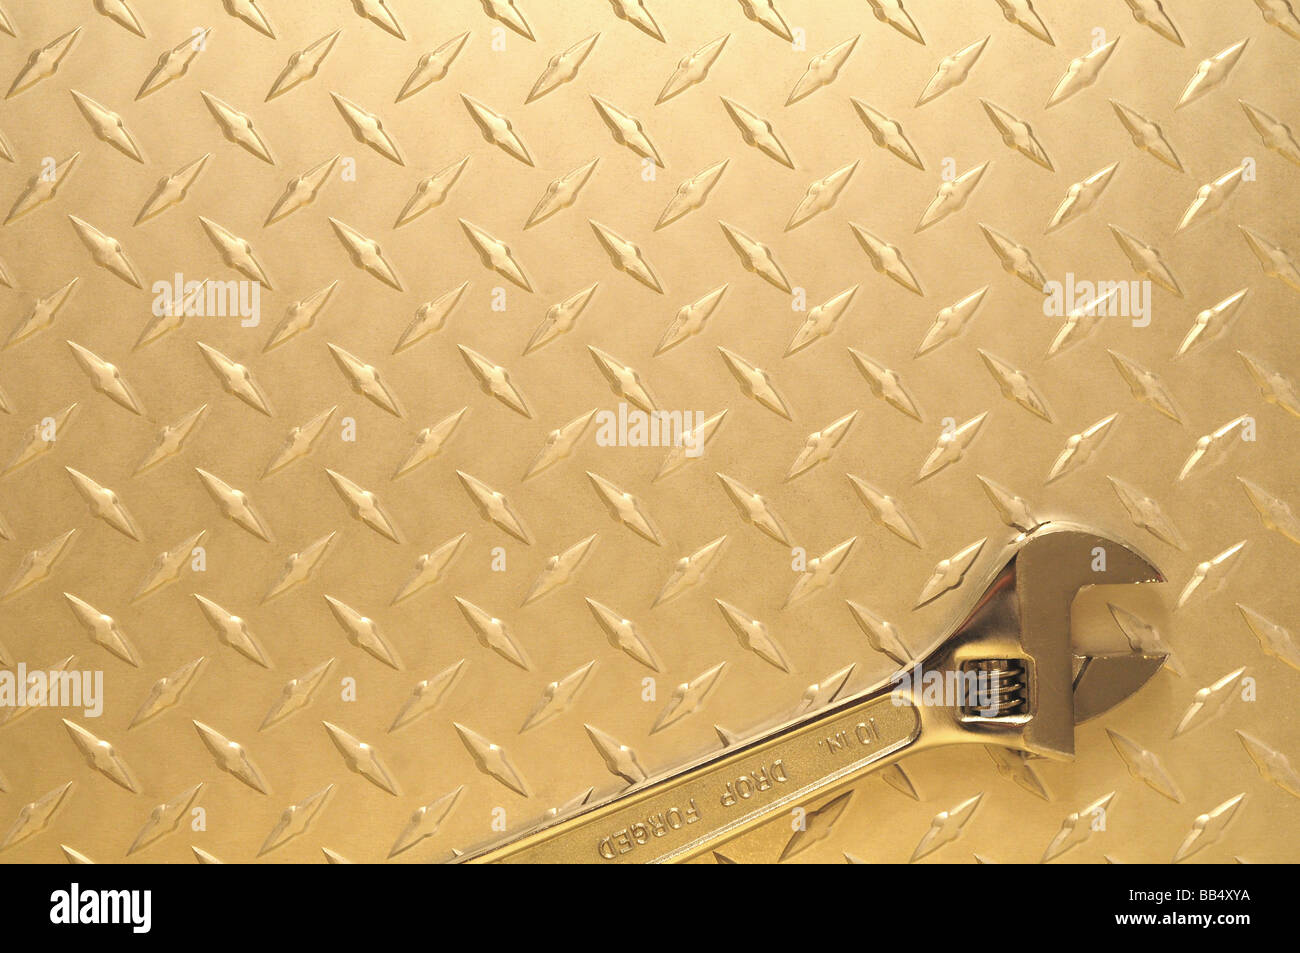 Crescent wrench on diamond plate steel background - Stock Image